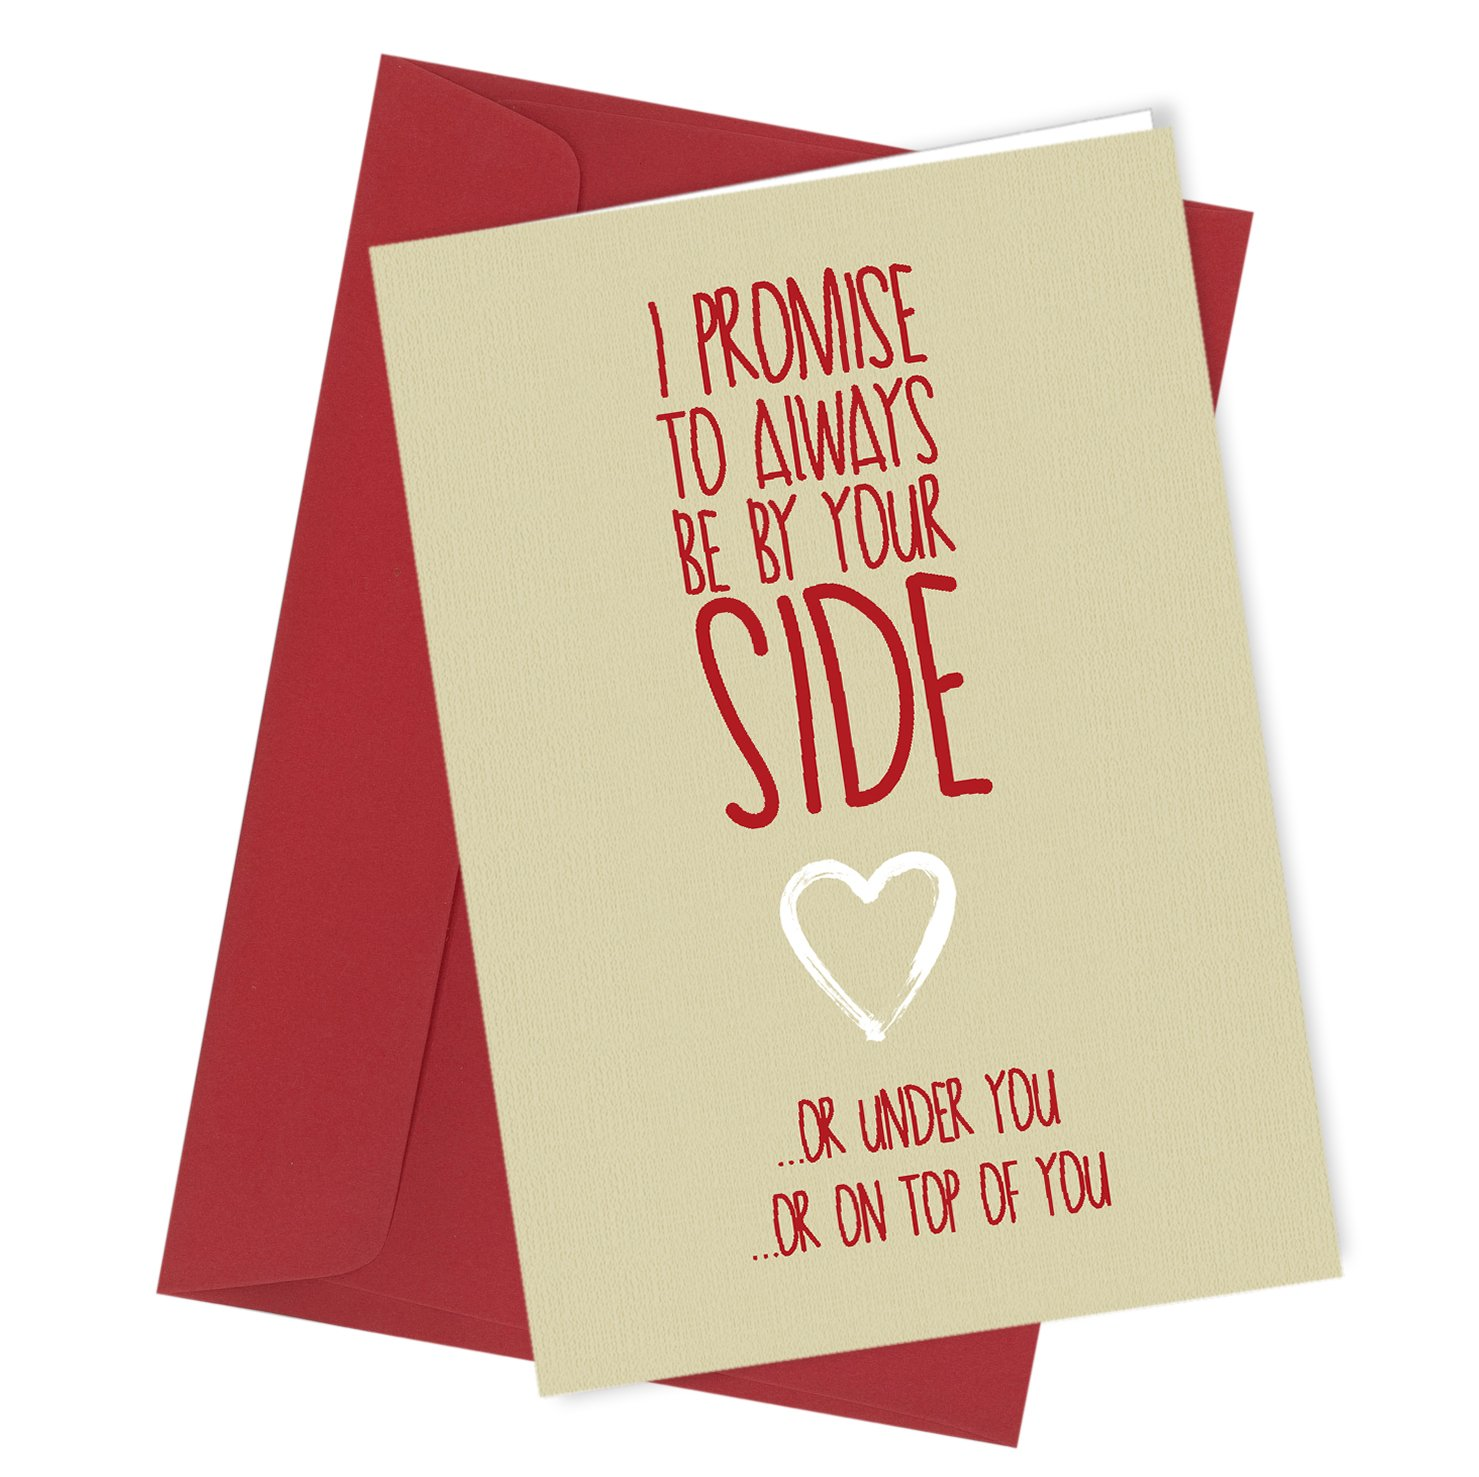 #74 By Your Side GREETINGS Card VALENTINE'S DAY or BIRTHDAY CARD rude funny humour joke novelty crude cheek A4 folded to A5 (210 x 148mm when folded) By: Close to the Bone Special Days